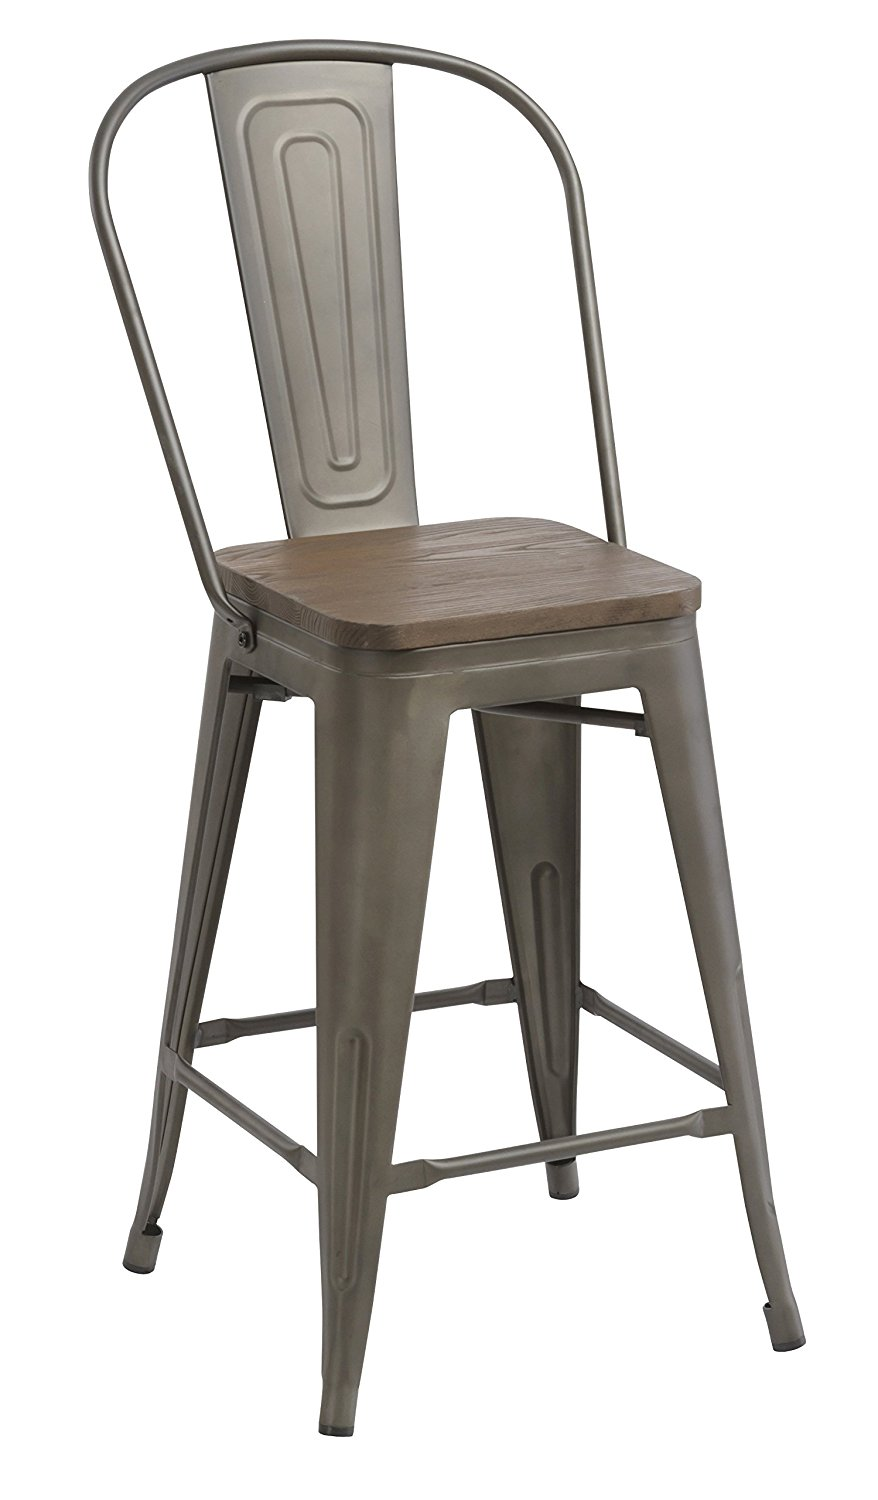 24 Bar Stool Chair High Back Natural Wooden Seat Set Of 2 Barstool